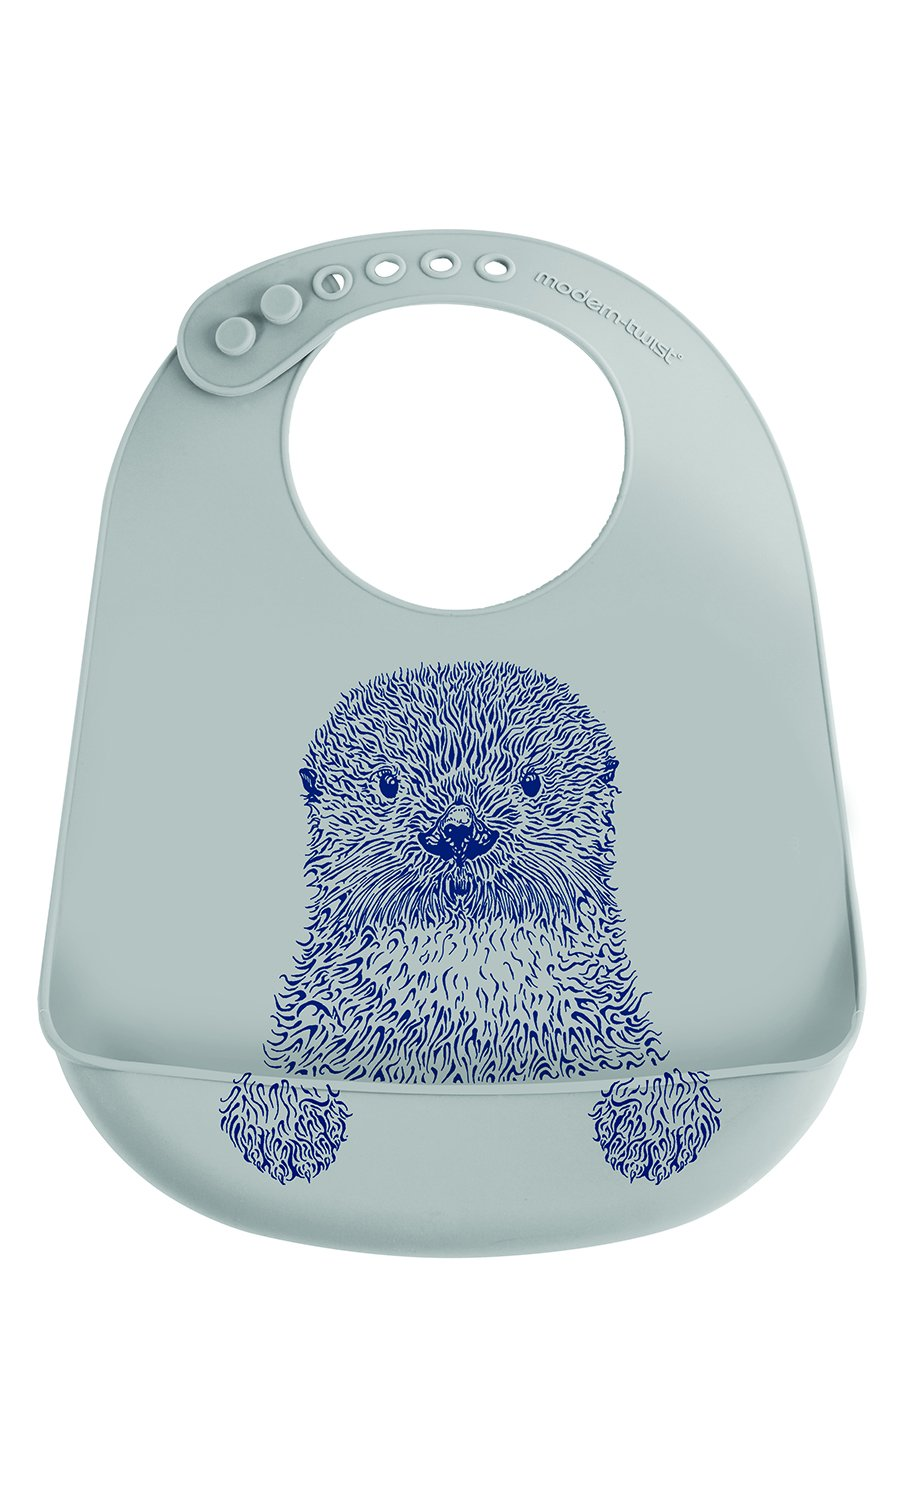 modern-twist Otter Waterproof Silicone Baby Bucket Bib with Adjustable Strap, Plastic Free, Wipe Clean and Dishwasher Safe, Navy Blue